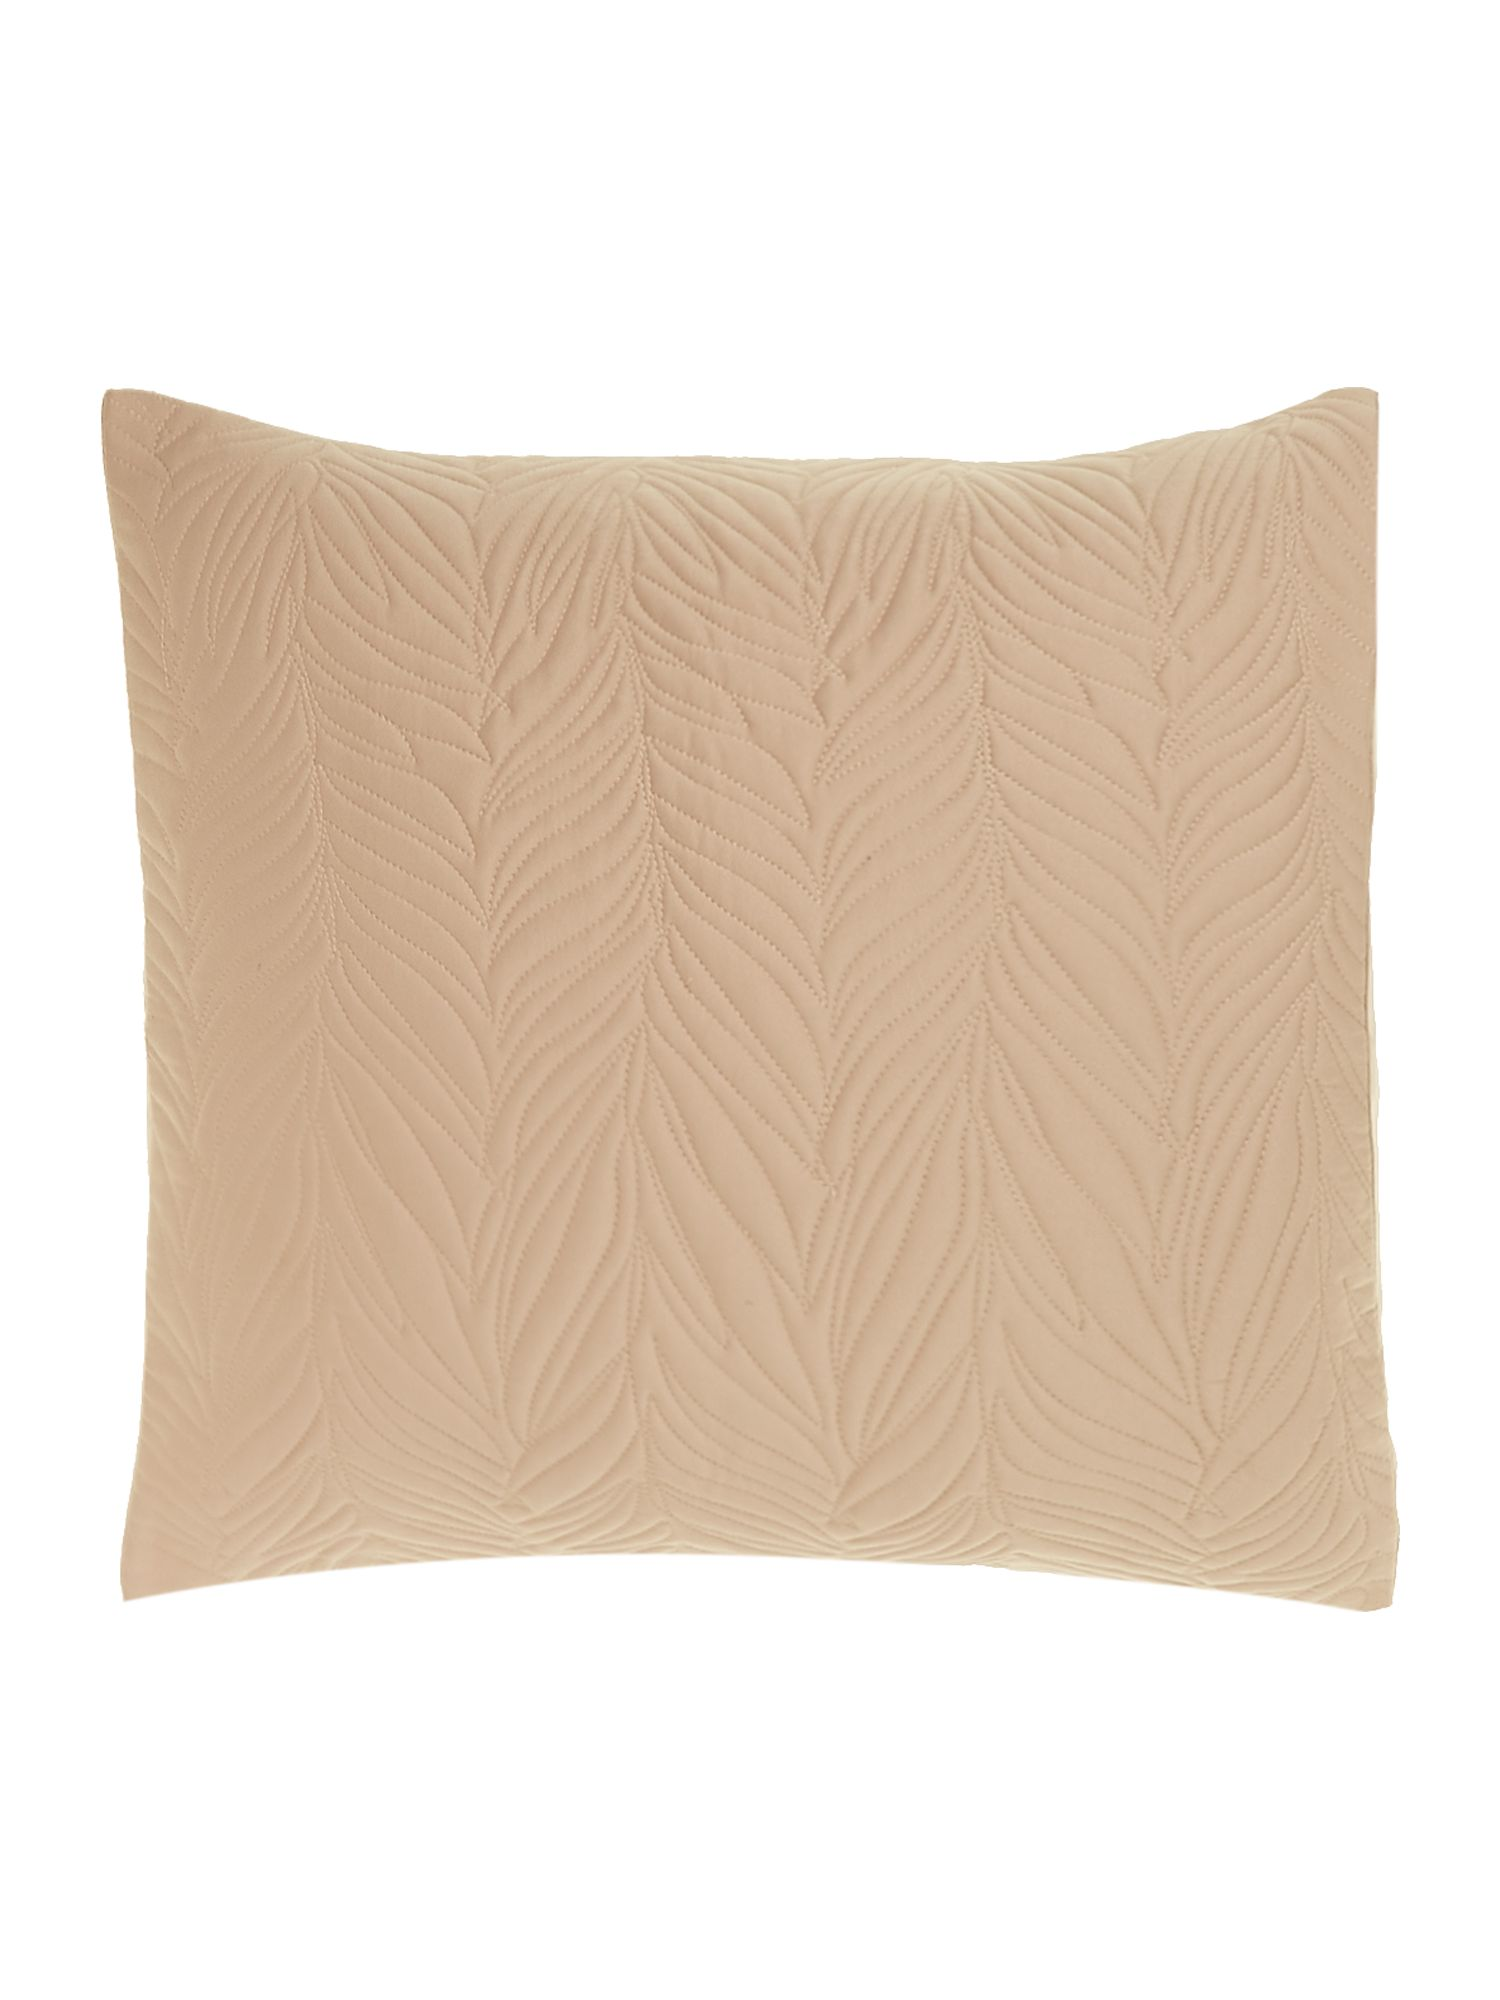 Putty leaf cushion